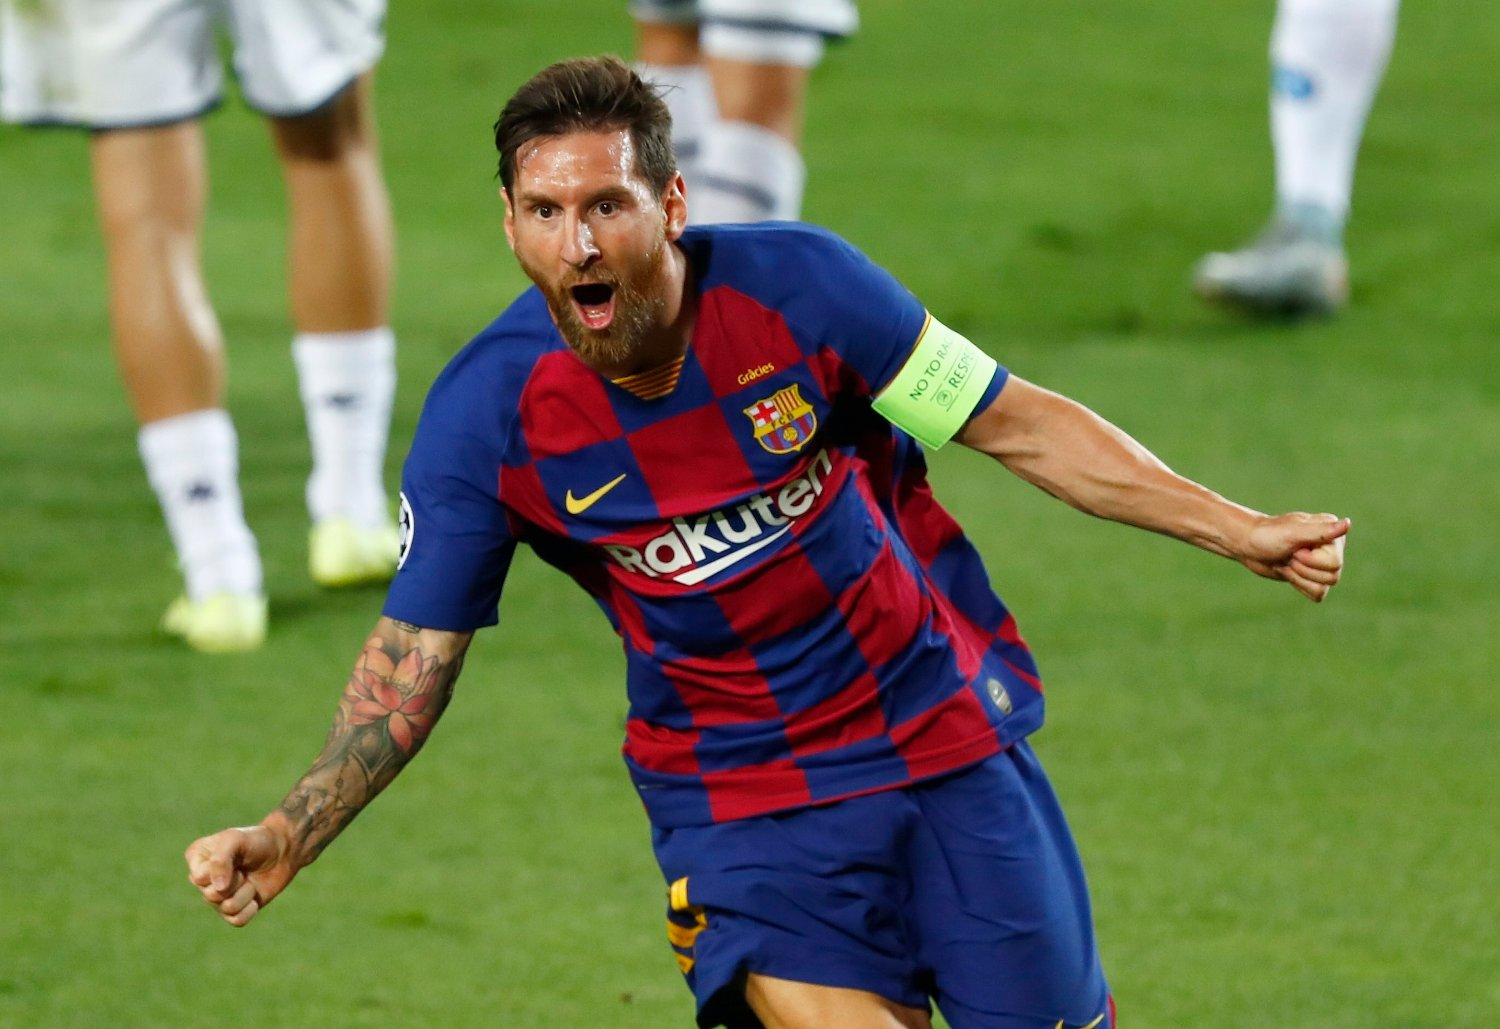 Barcelona's Lionel Messi celebrates after scoring his side's second goal during the Champions League round of 16, second leg soccer match between Barcelona and Napoli at the Camp Nou Stadium in Barcelona, Spain, Saturday, Aug. 8, 2020.